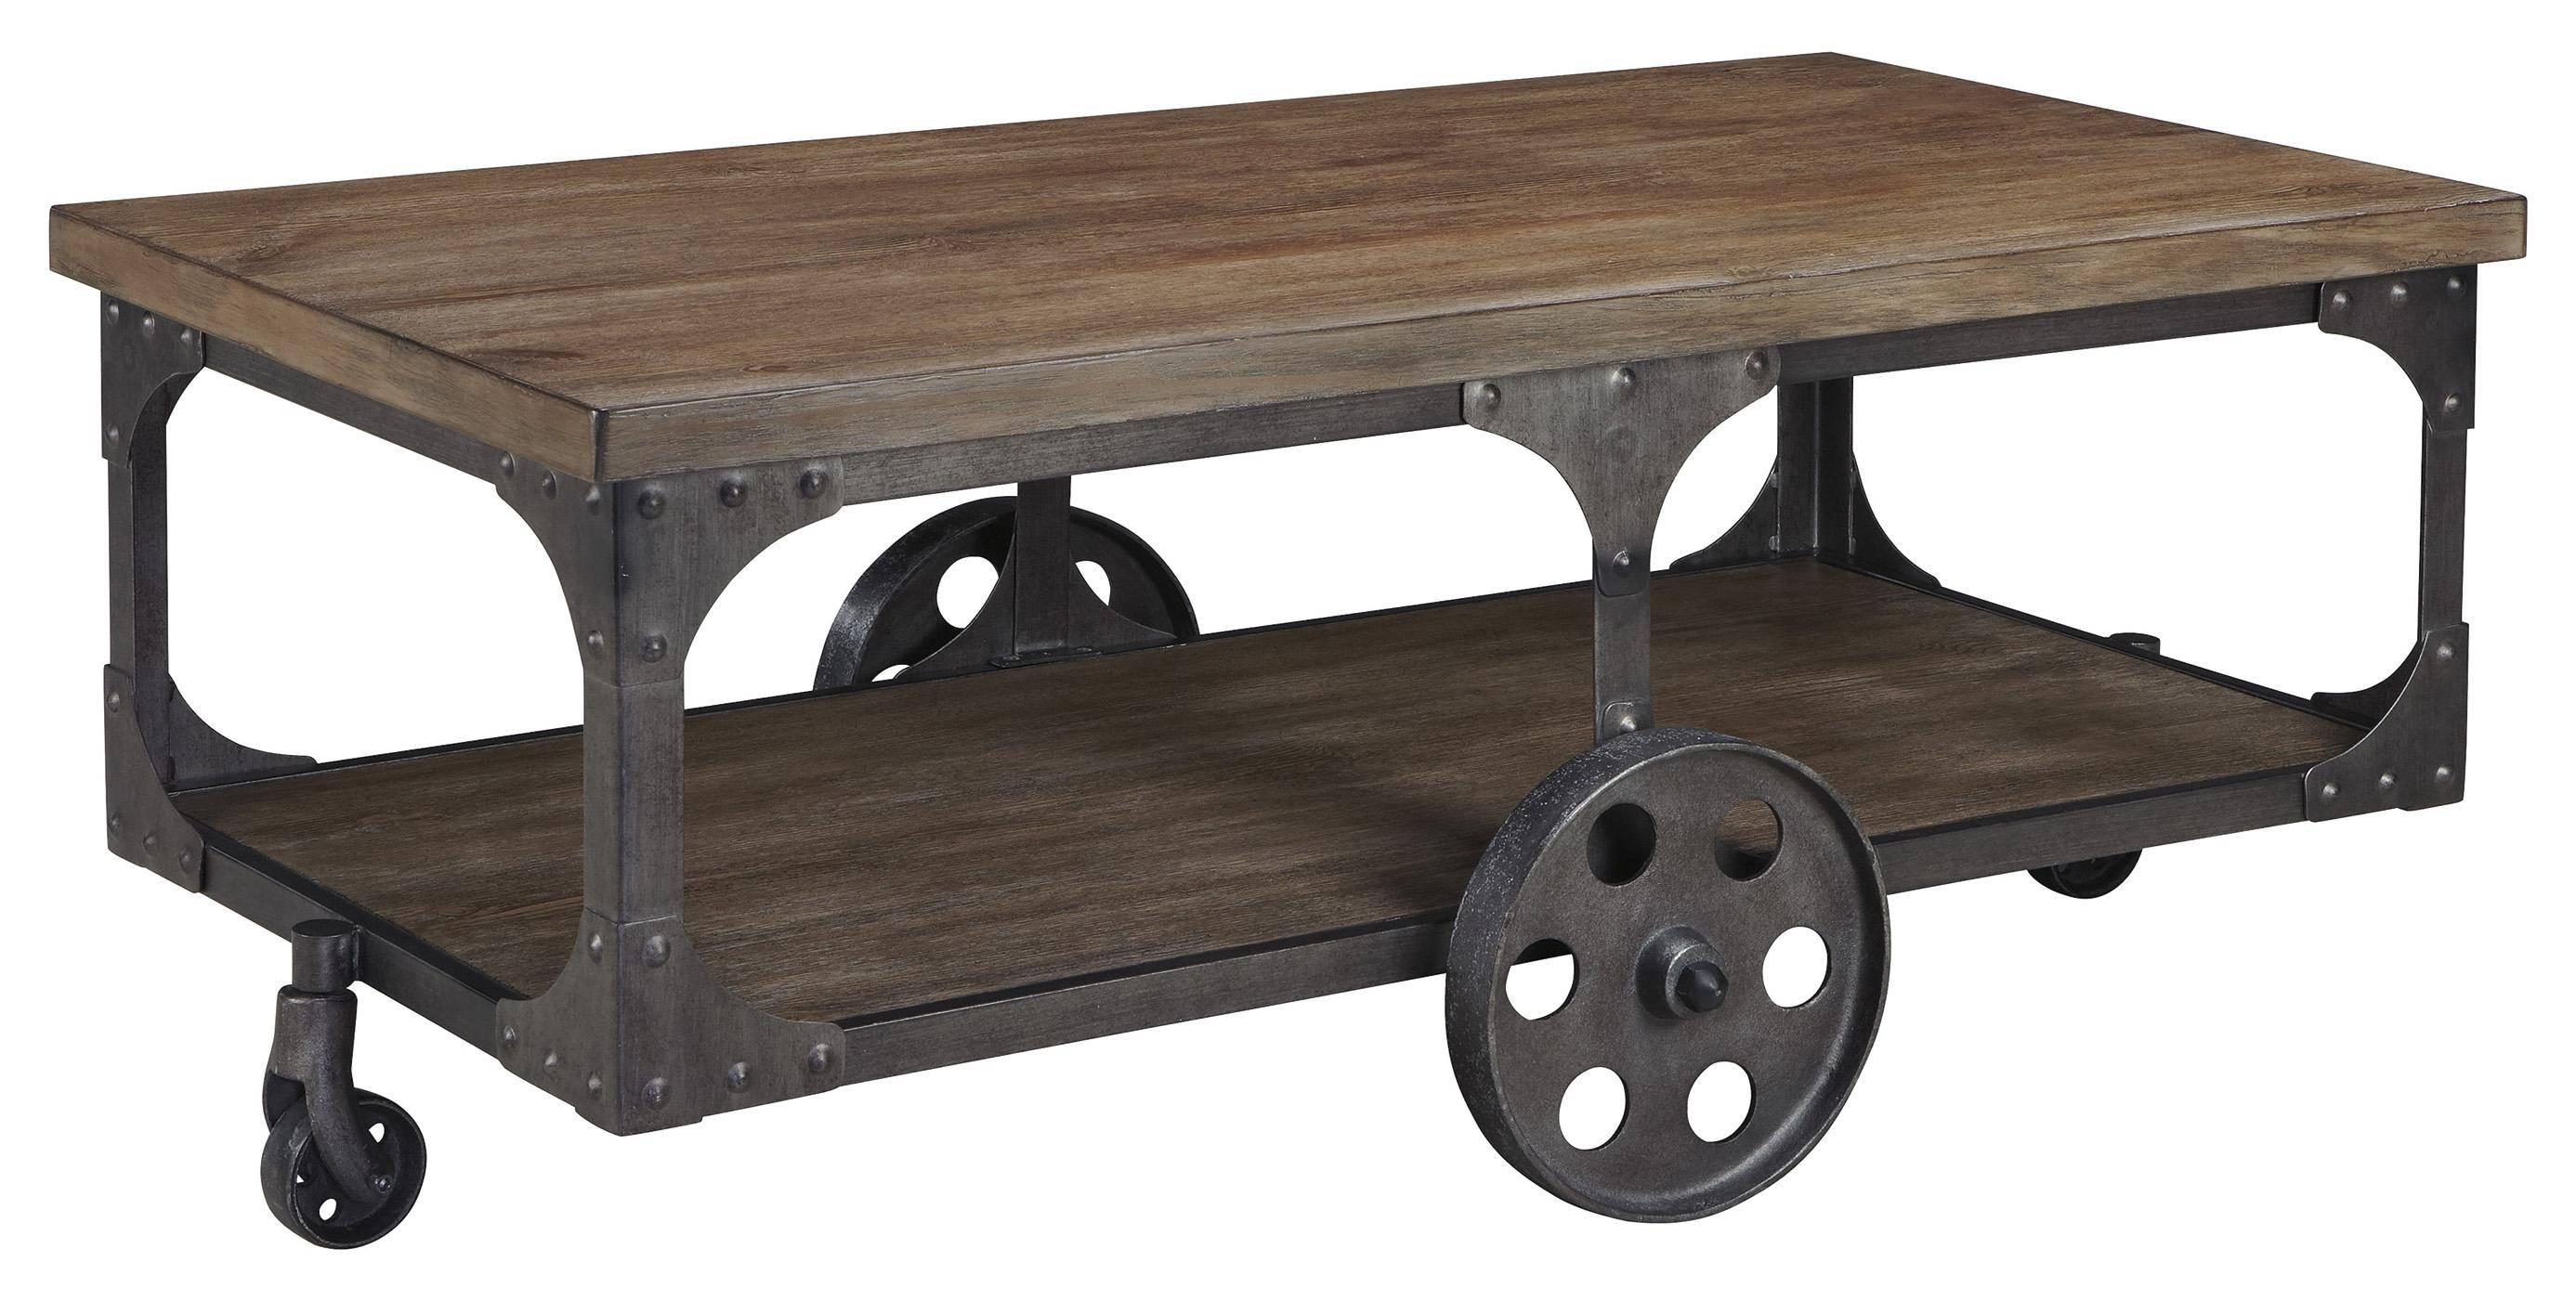 30 Inspirations of Wheels Coffee Tables